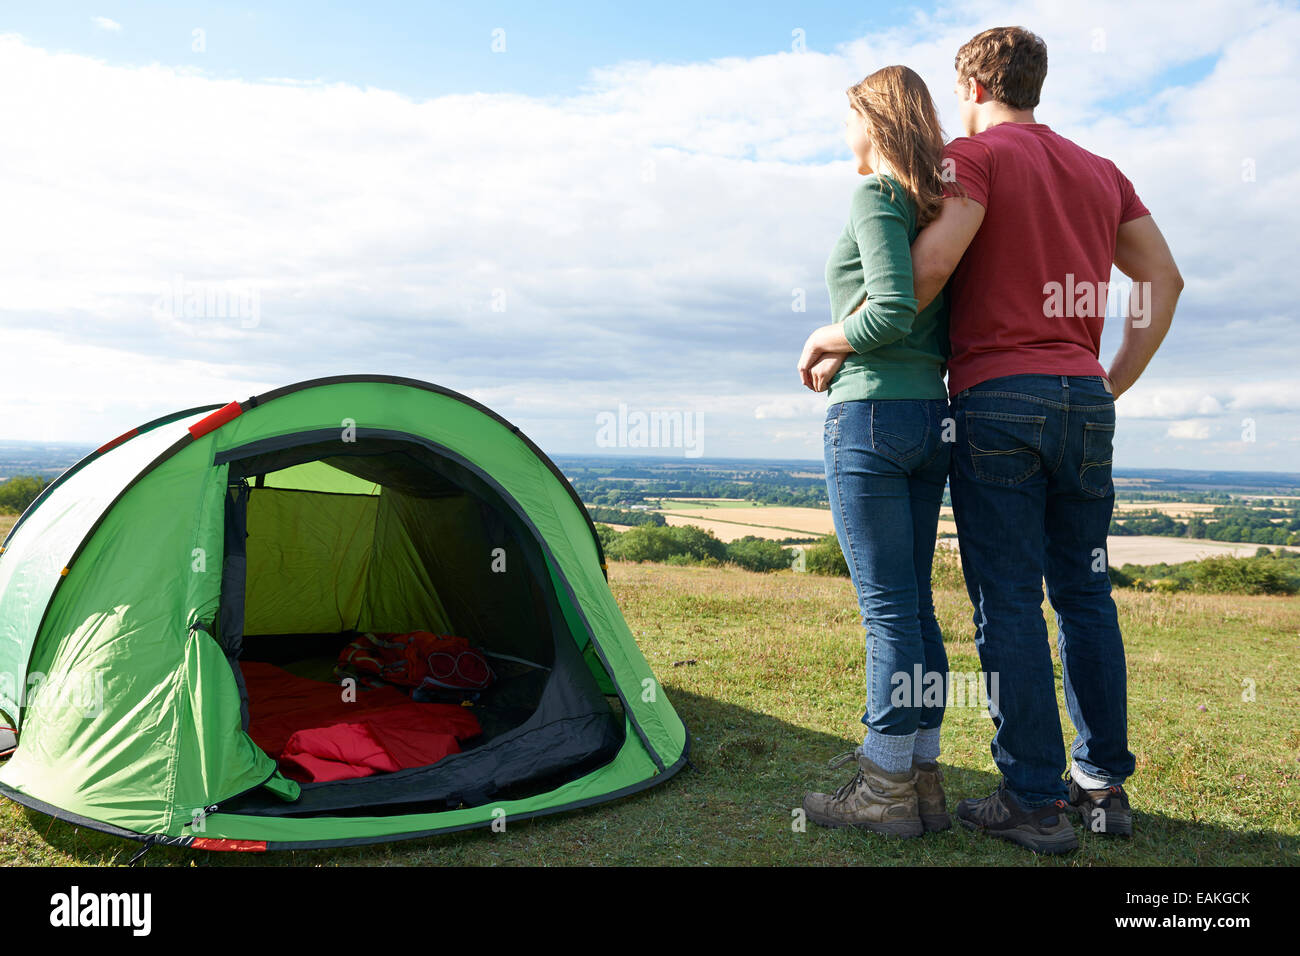 Couple Camping In Countryside Standing By Tent - Stock Image